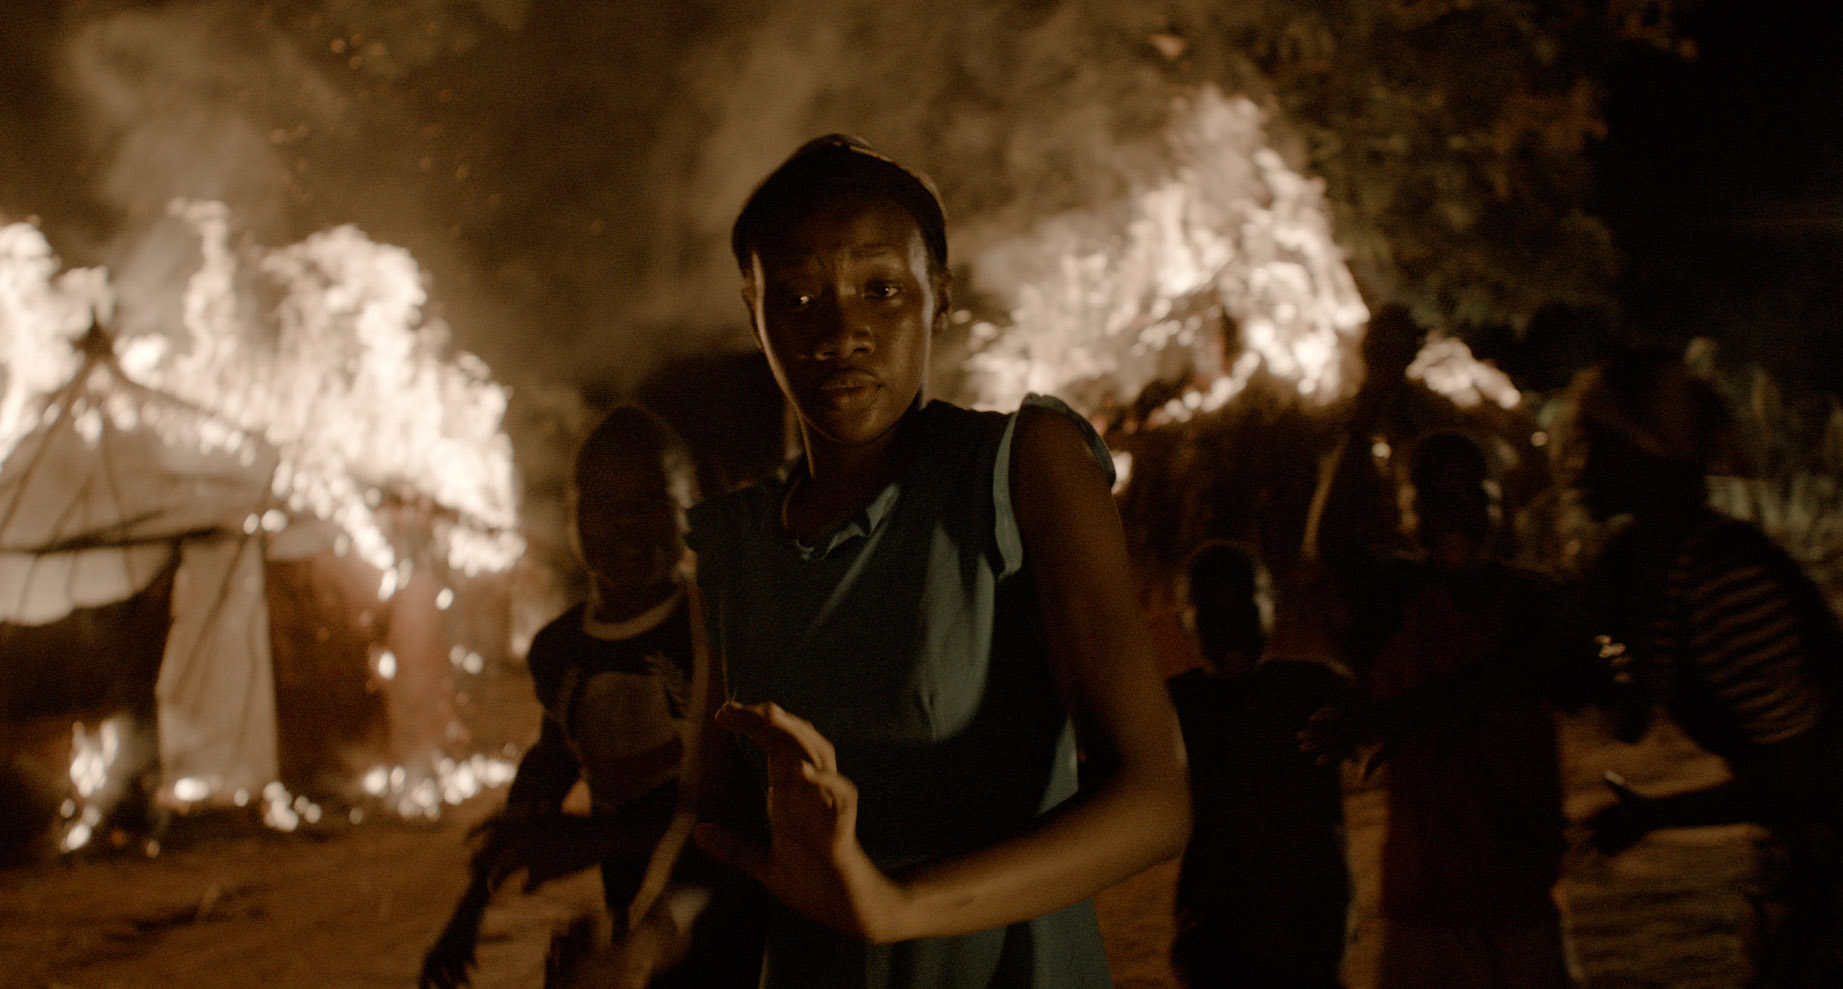 If you've watched the trailer, you must be familiar with this scene. Lots of people running away from a fire.